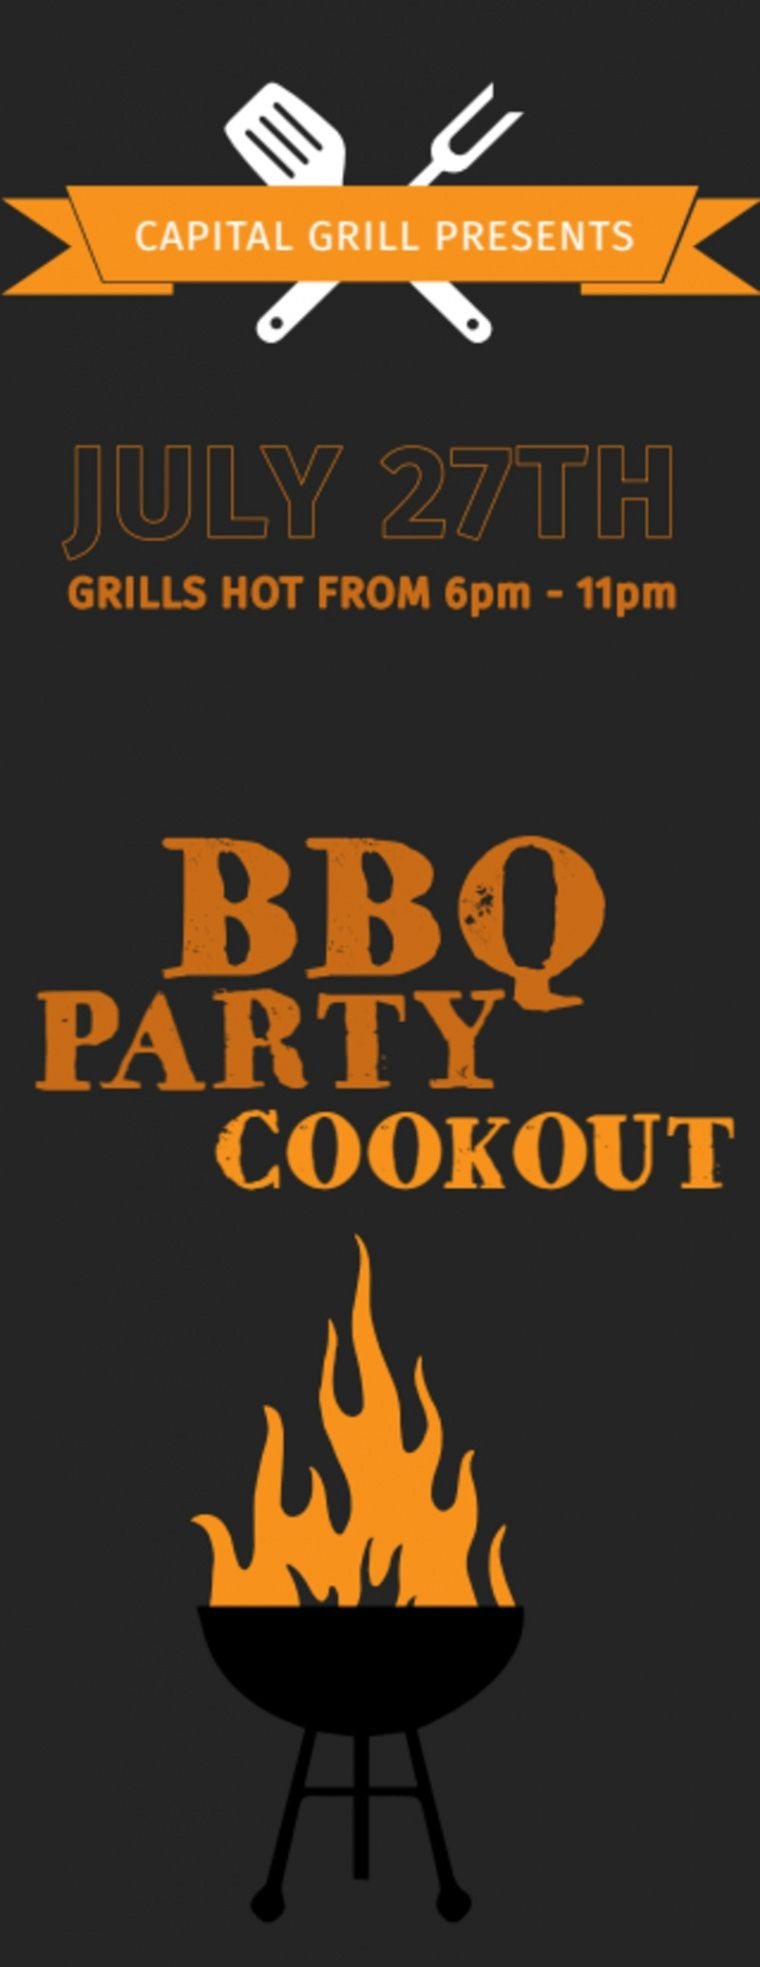 sample bbq party cookout ticket template  mycreativeshop steak plate sale ticket template sample